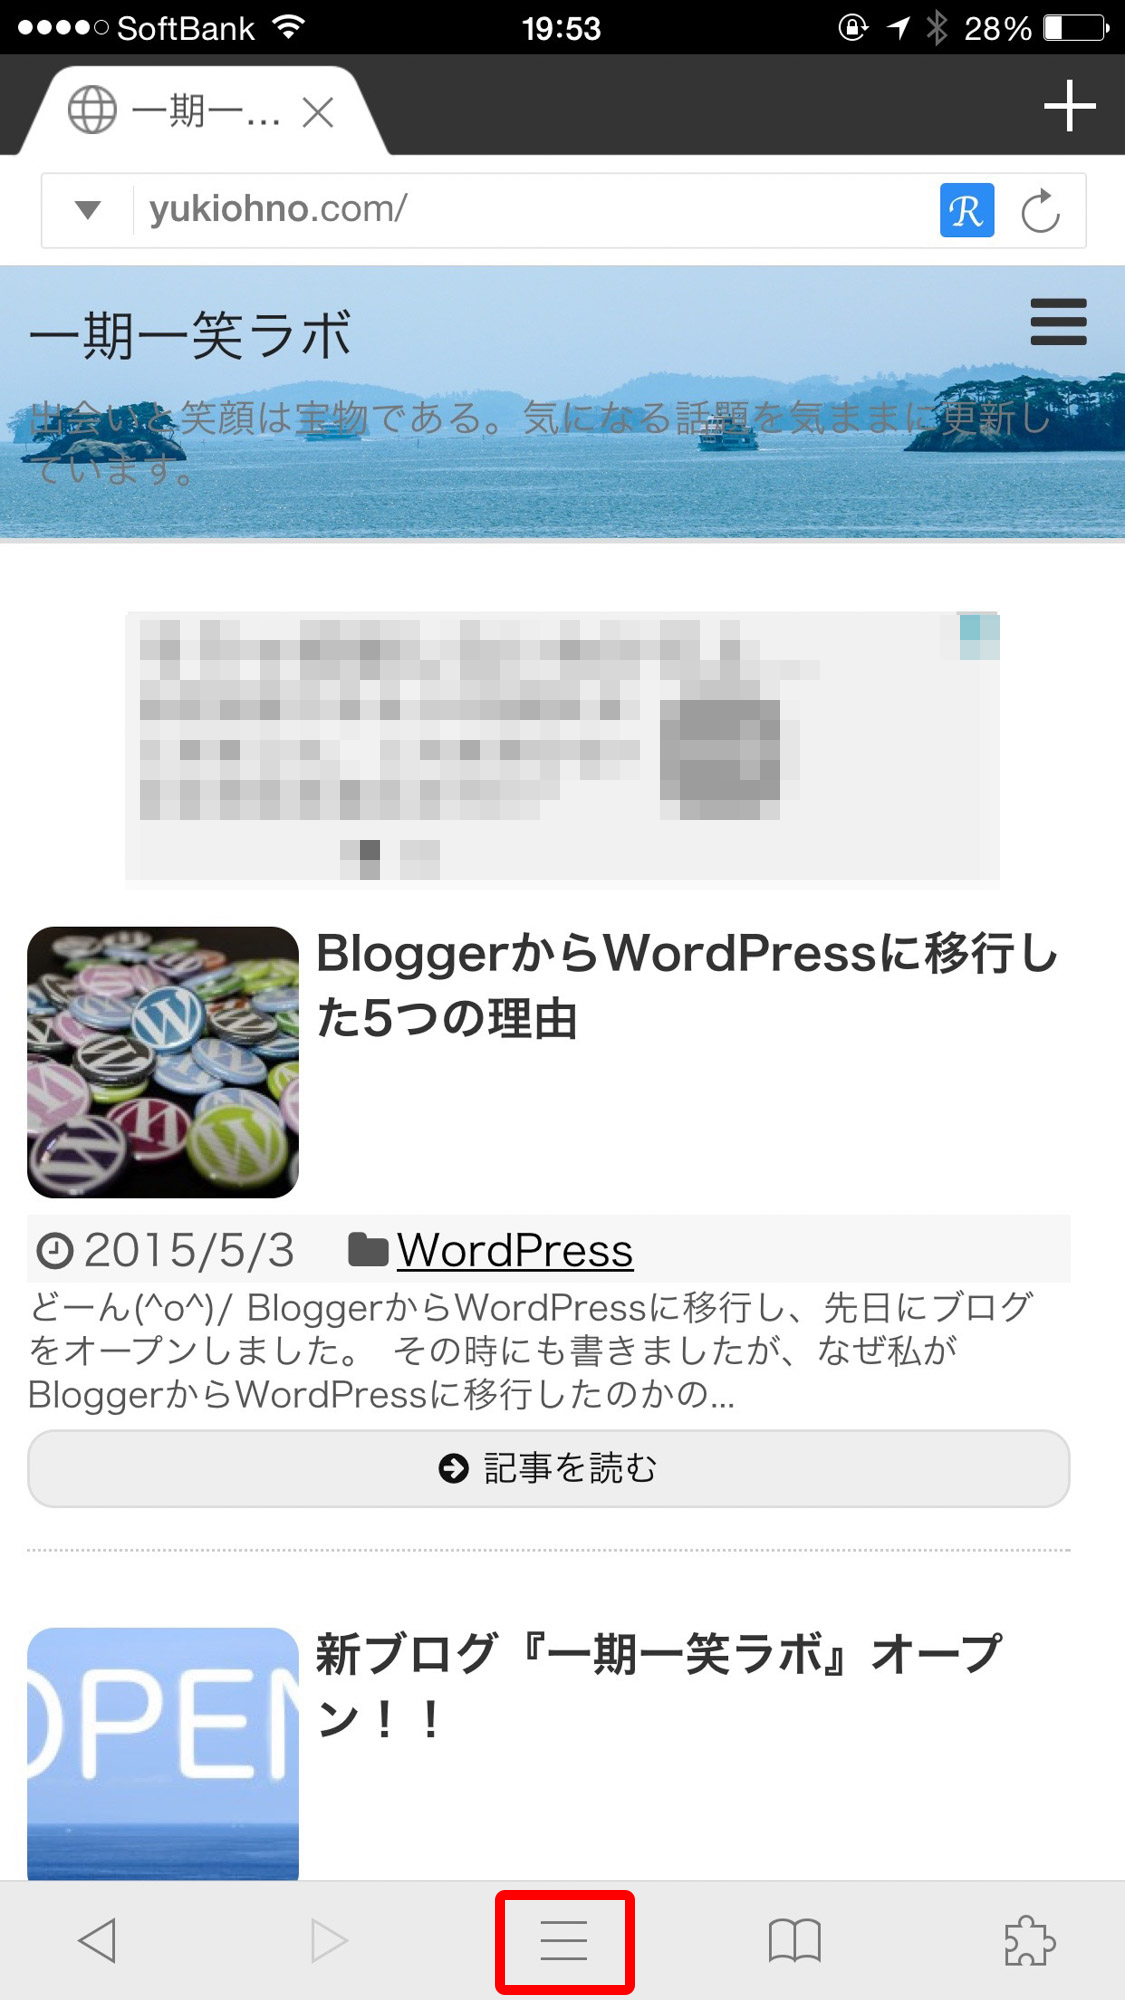 browser-wp-4301